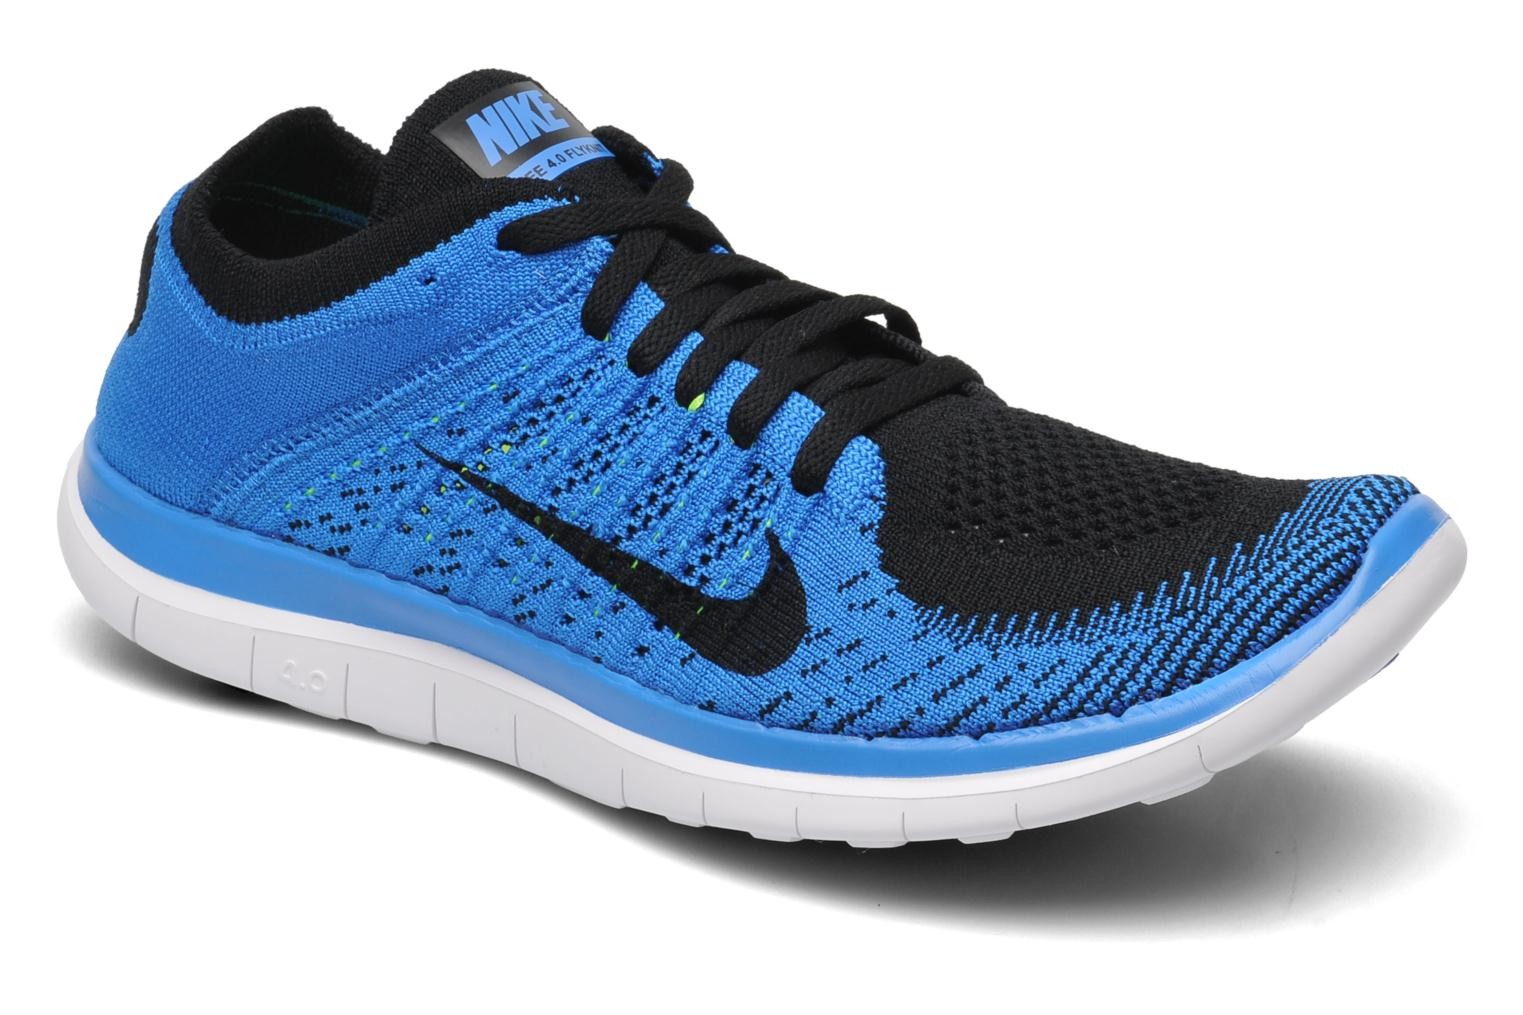 quality design 979de 7f103 Price $64.5 Nike Free 4.0 Flyknit Black/Black-Photo Blue ...